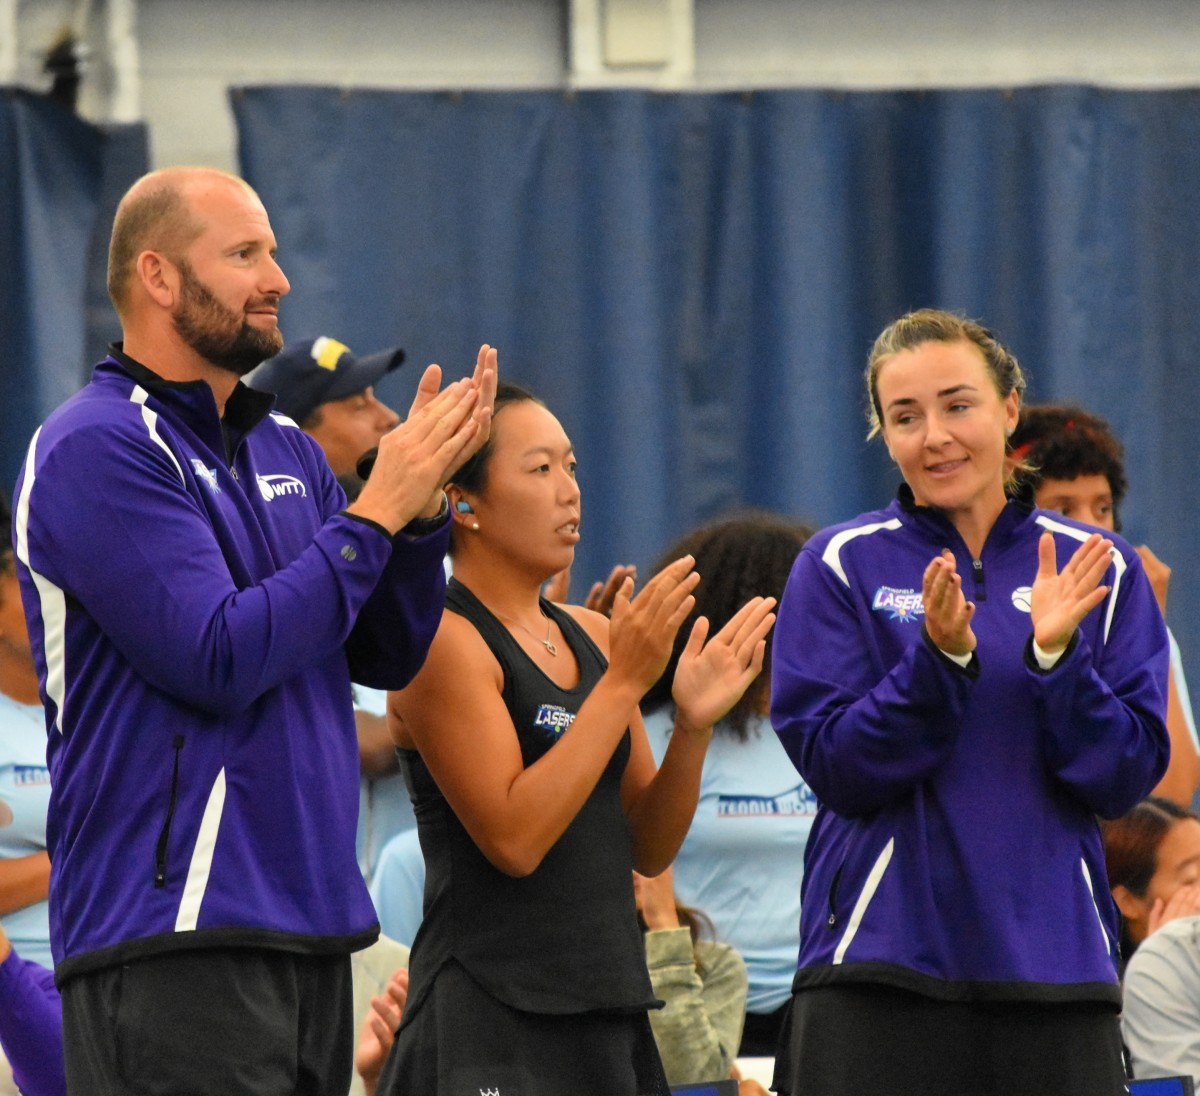 World TeamTennis: Springfield Lasers defeat New York Empire in extended play